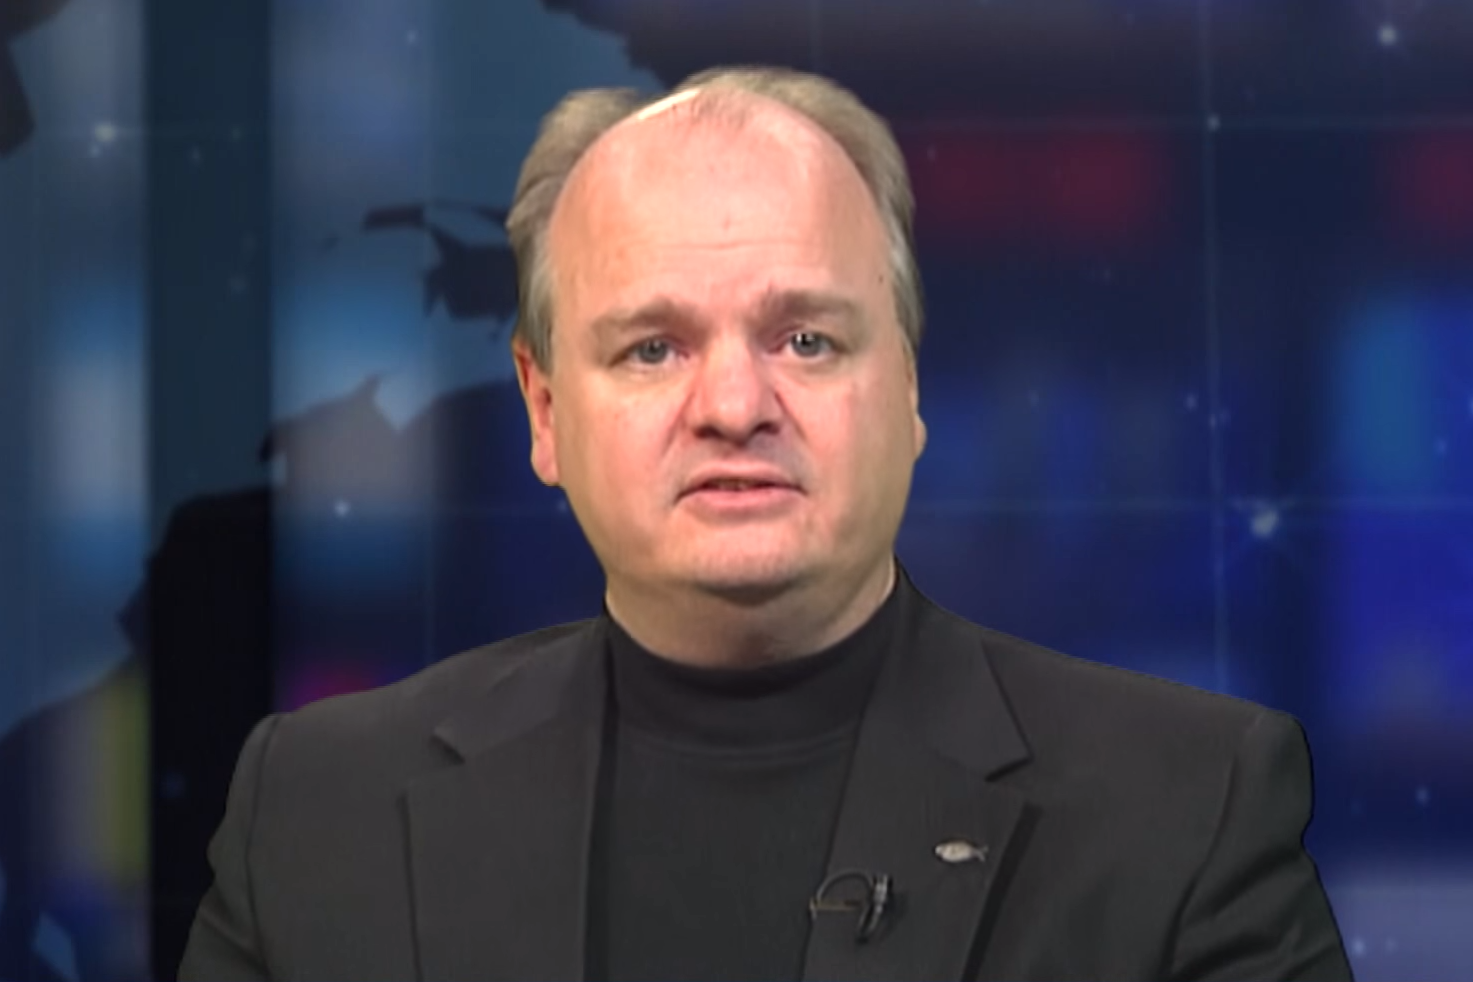 Gordon Klingenschmitt, Credit: YouTube